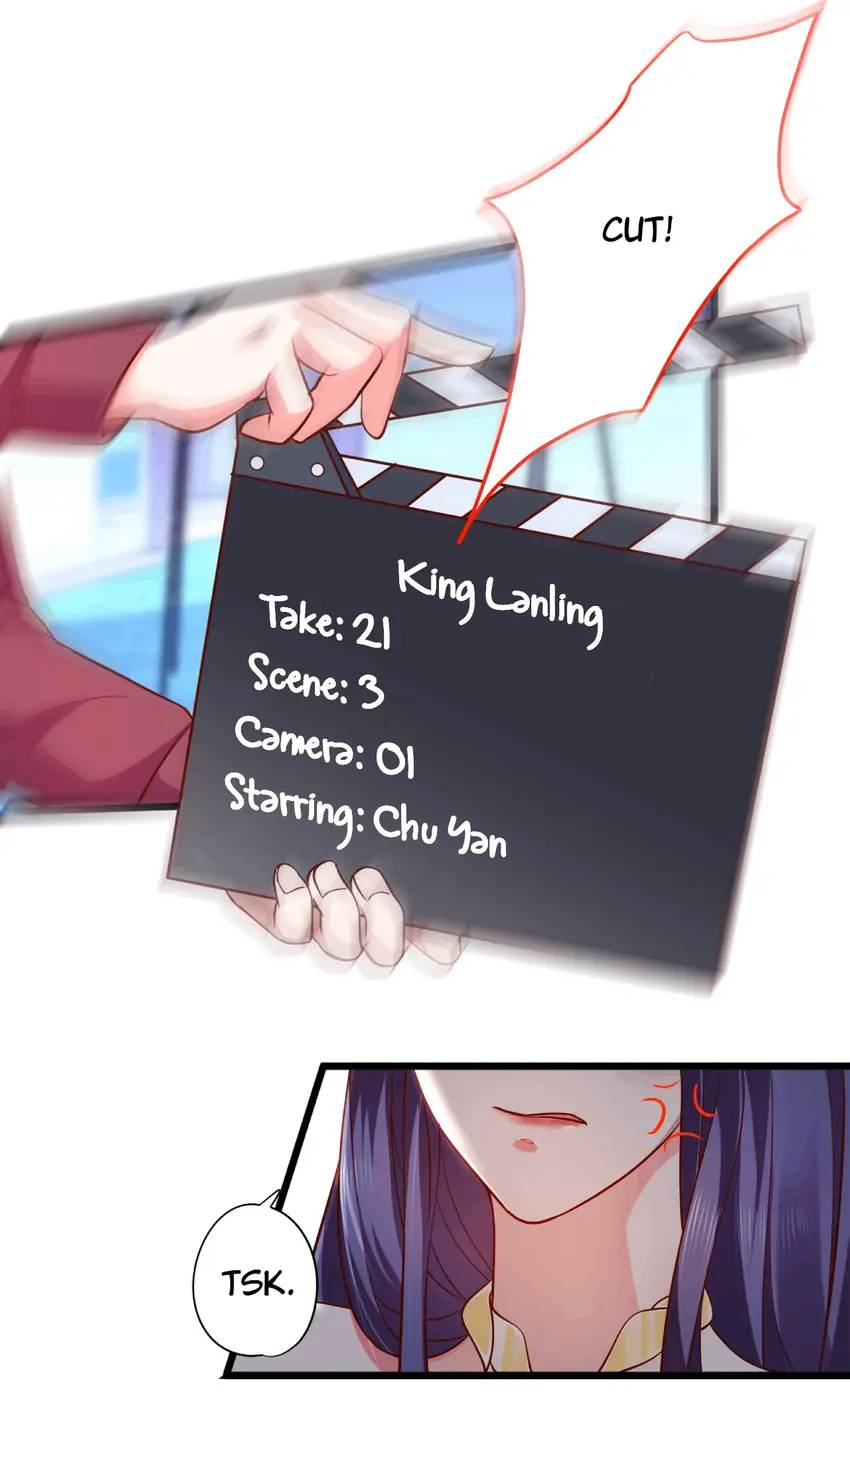 King Lanling Before, Movie King Now